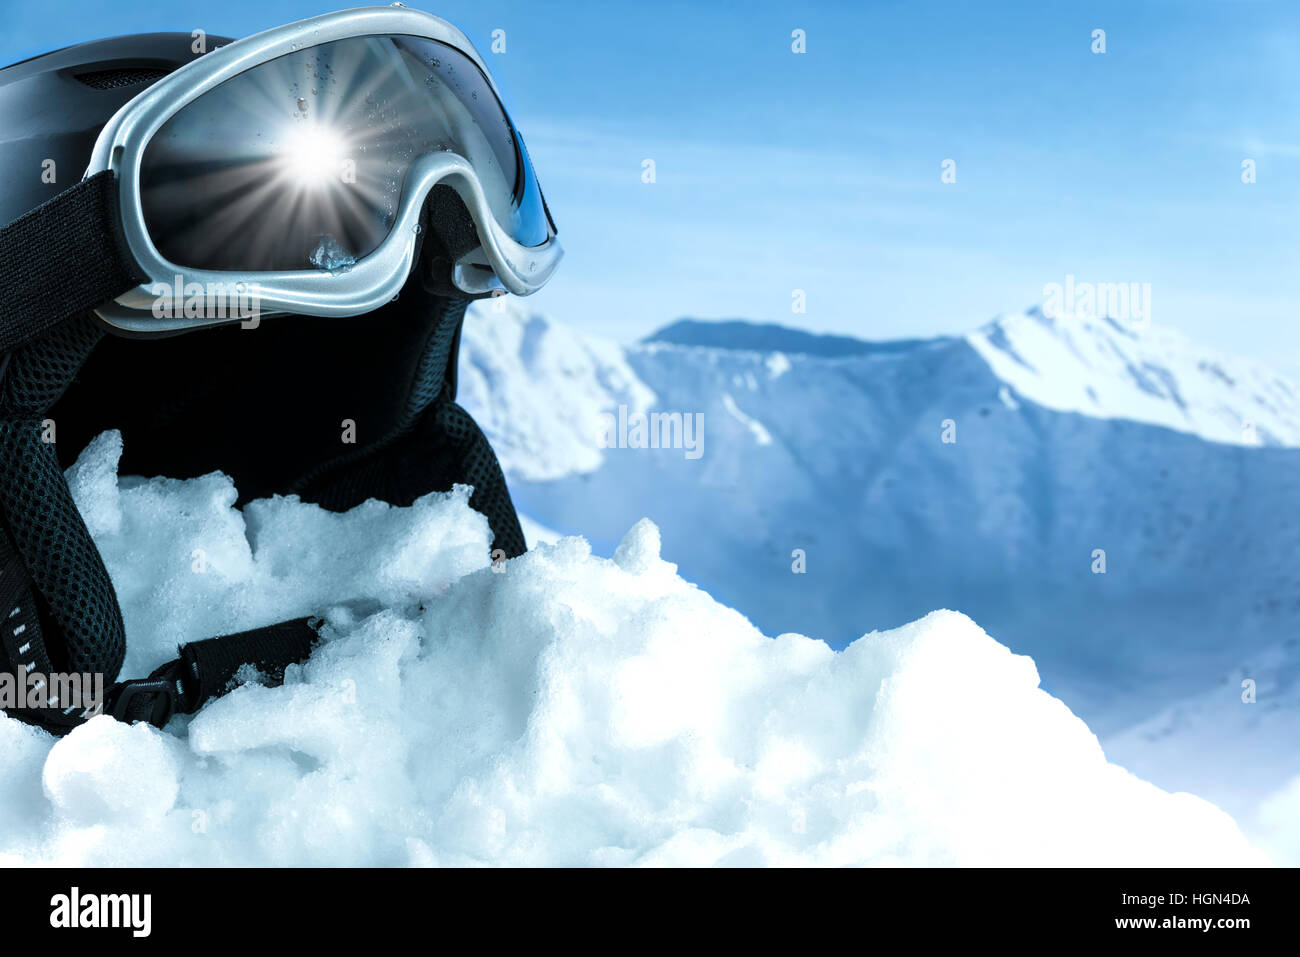 Helmet and ski goggles on snow with a blue sky and mountains - Stock Image